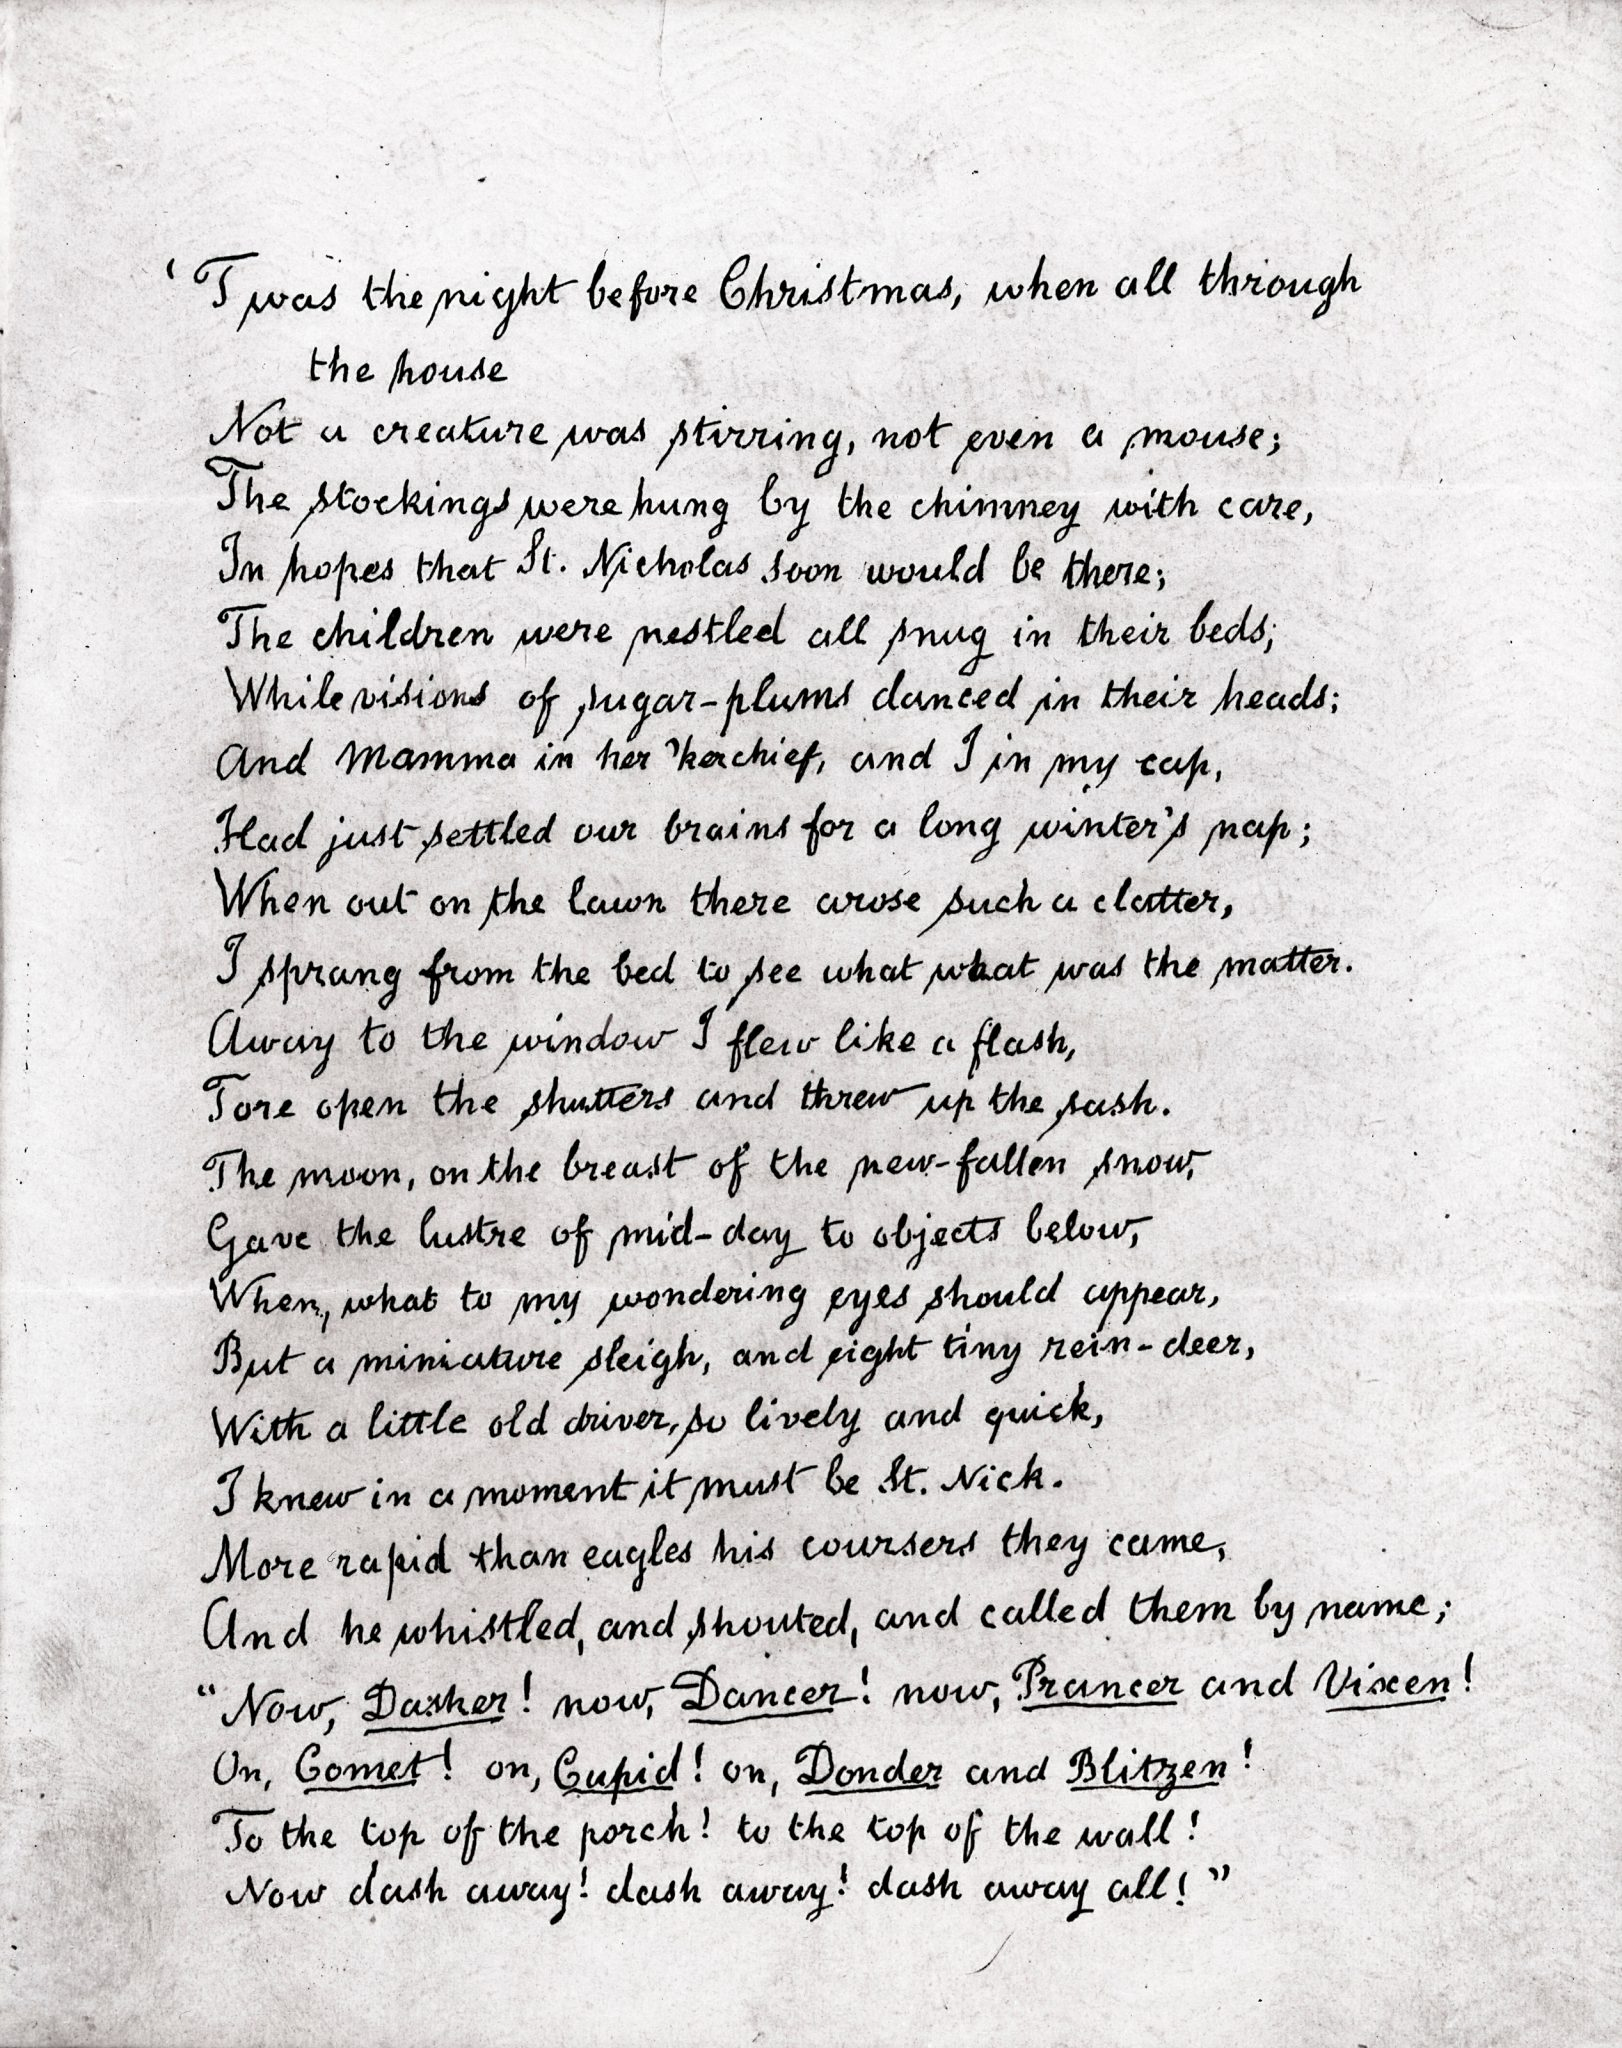 23rd December 1823: The Night Before Christmas first published | HistoryPod